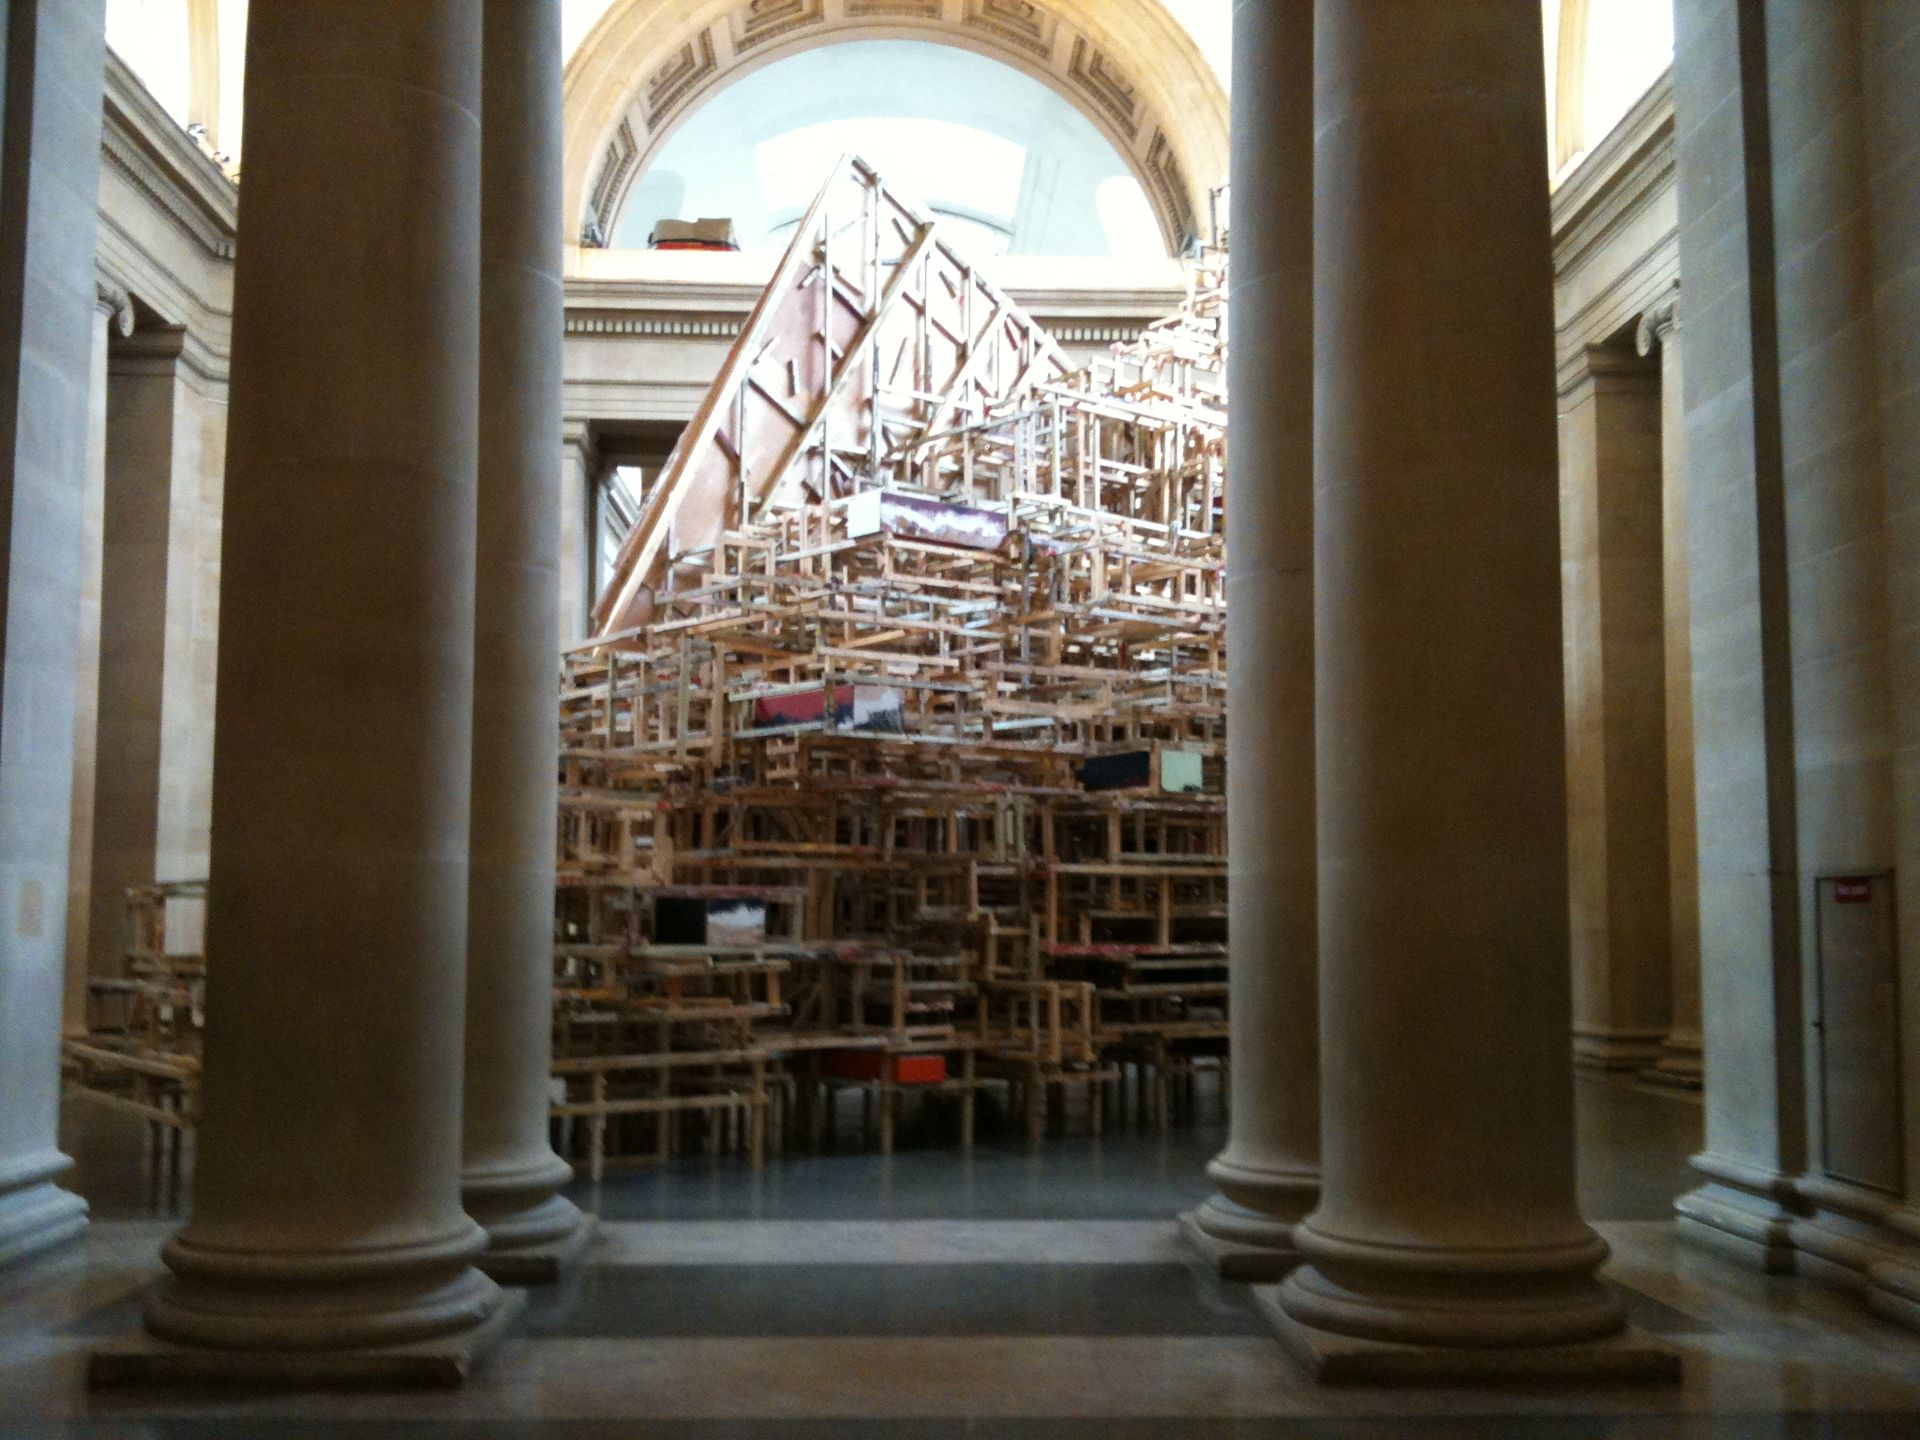 Phyllida Barlow's The Dock